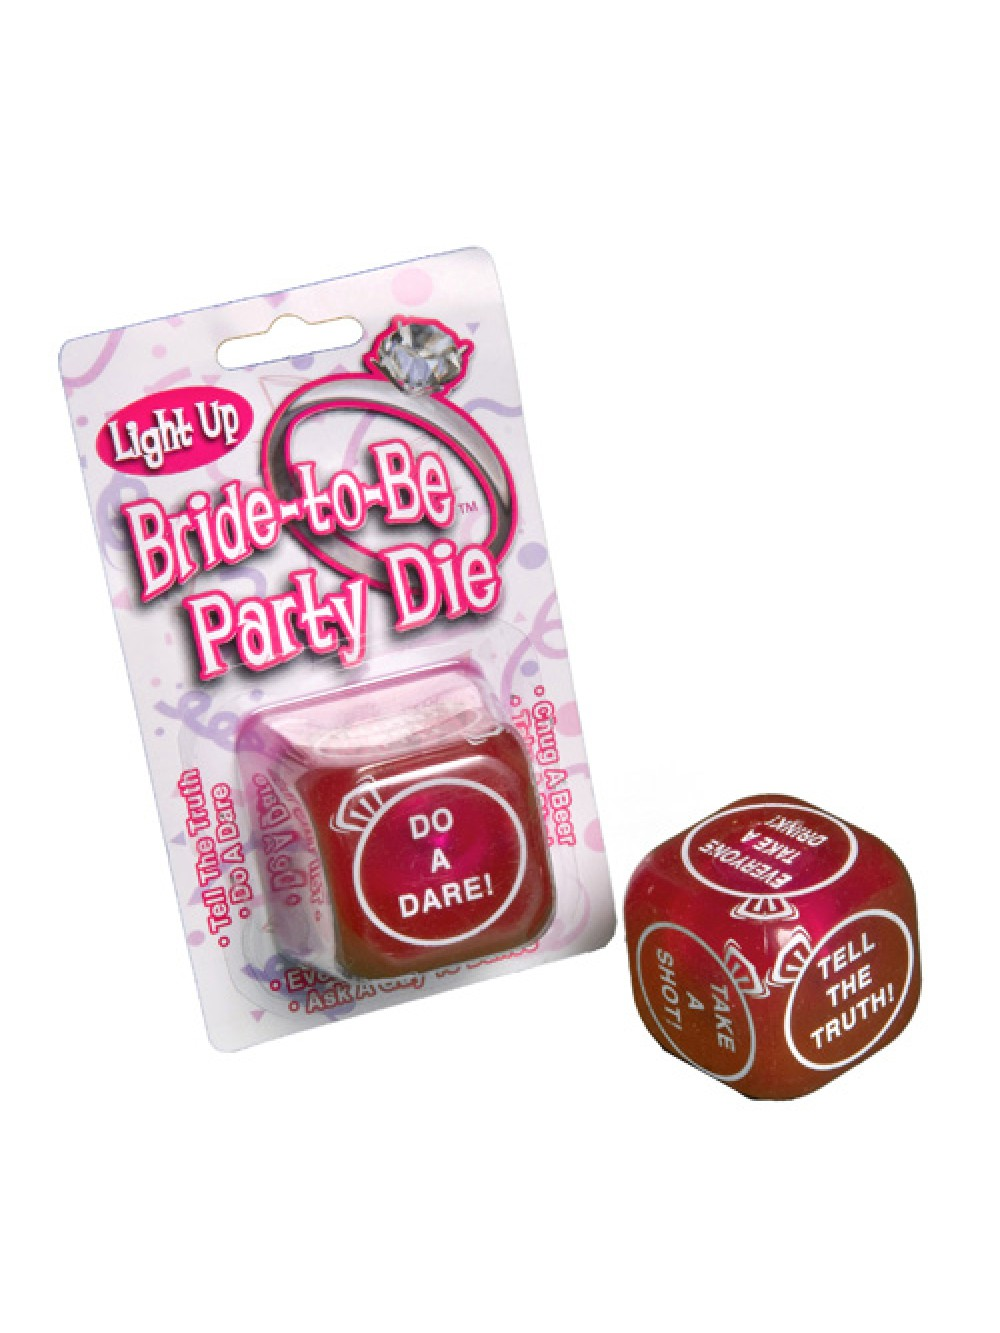 Flashing Bride To Be Party Dice 176554005652